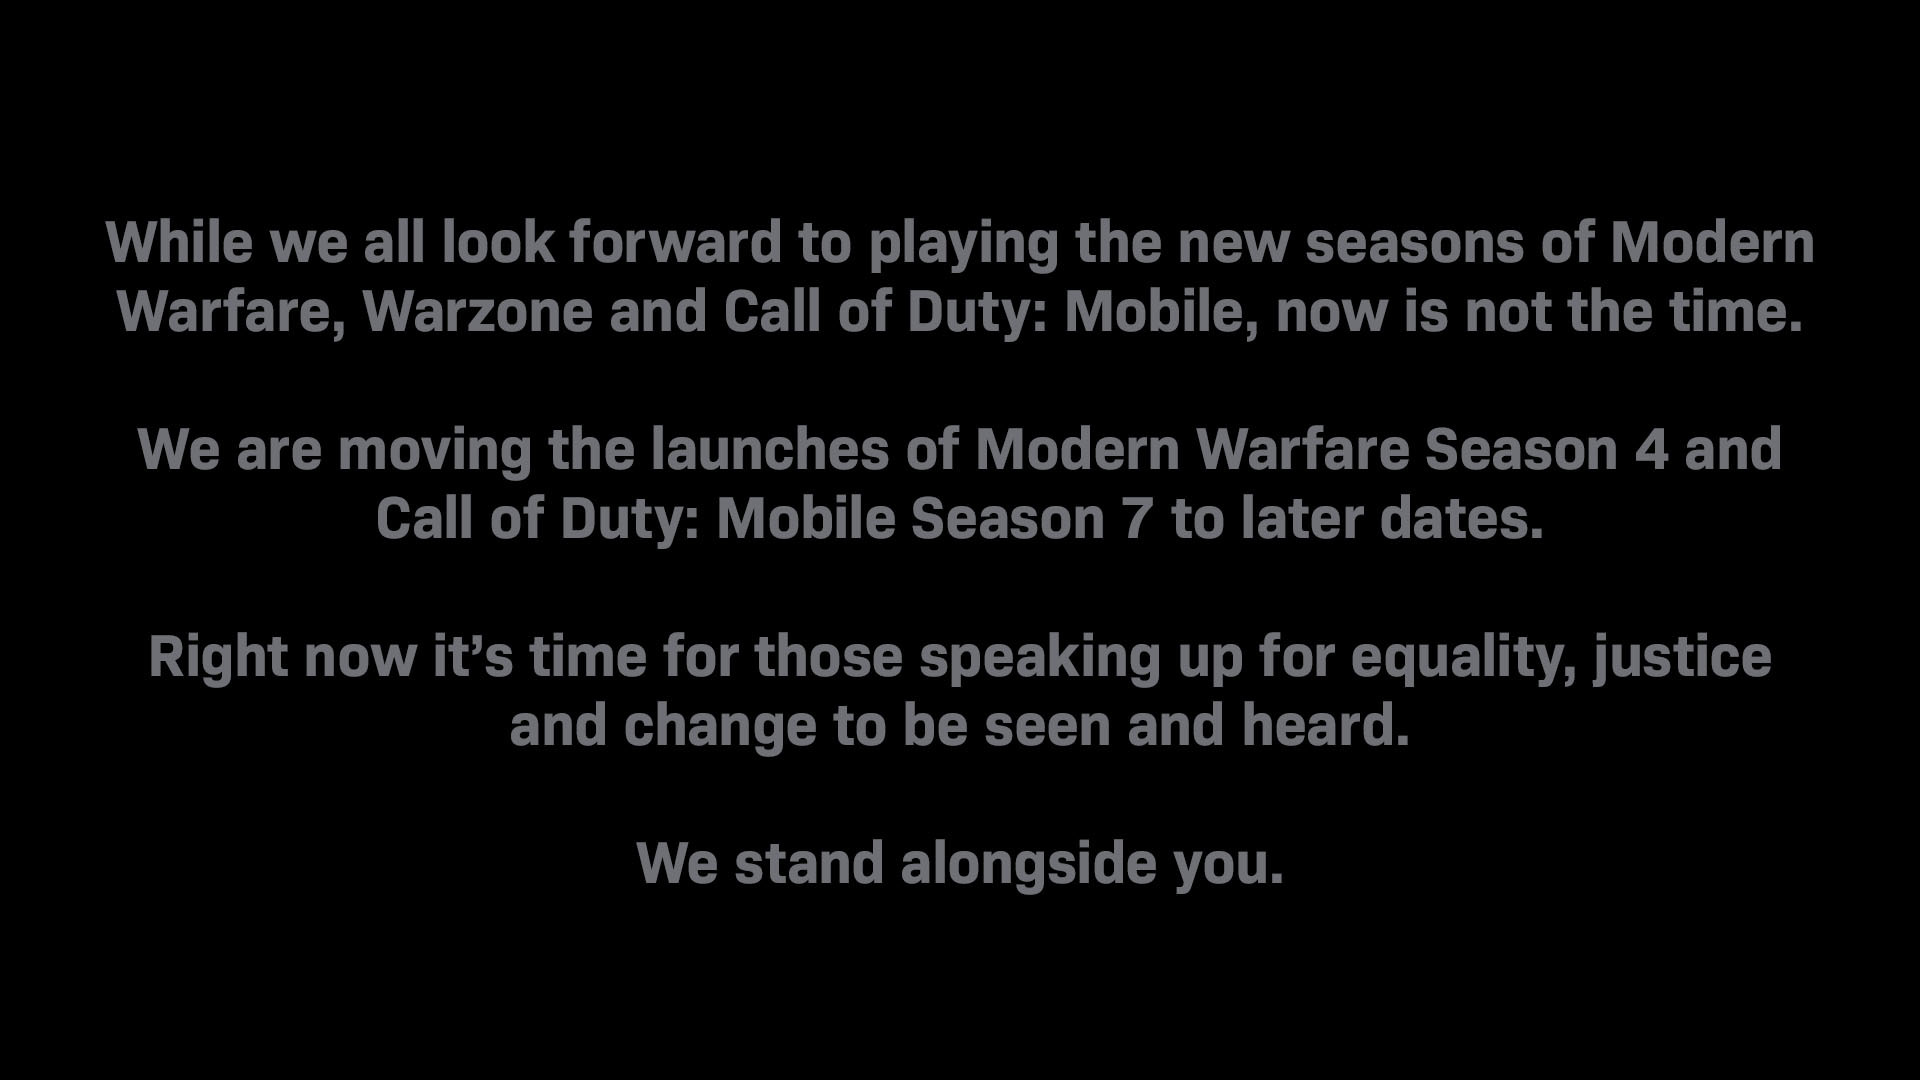 Cancelan temporadas de Call of Duty hasta nuevo aviso